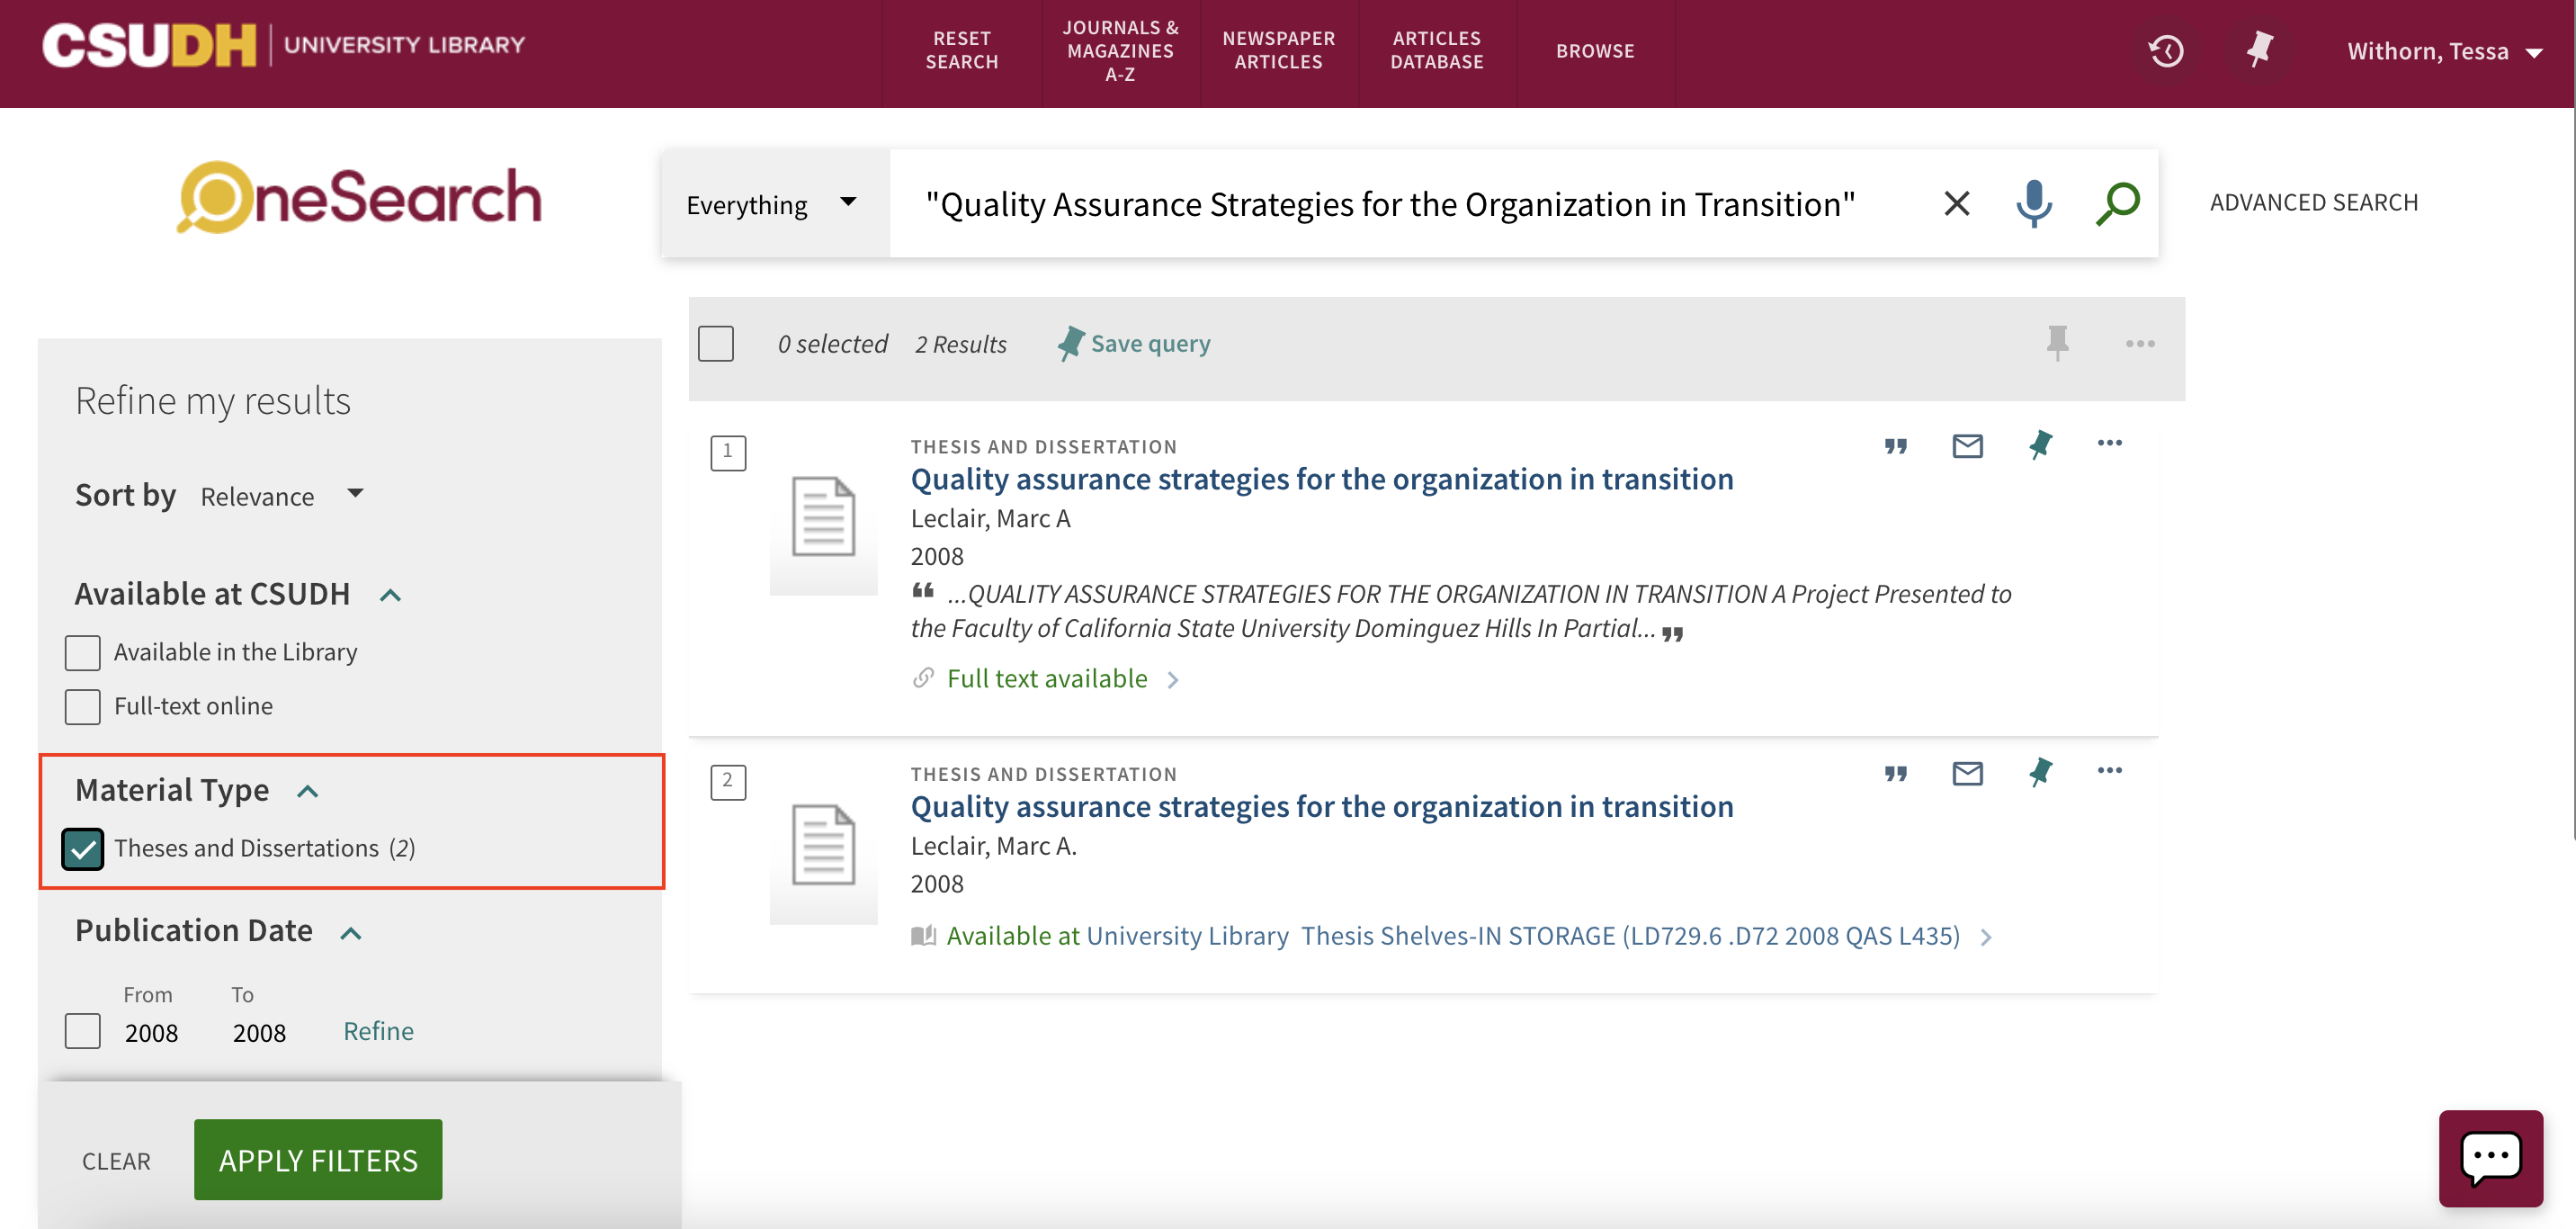 Screenshot of OneSearch with Material Type Theses and Dissertations highlighted.